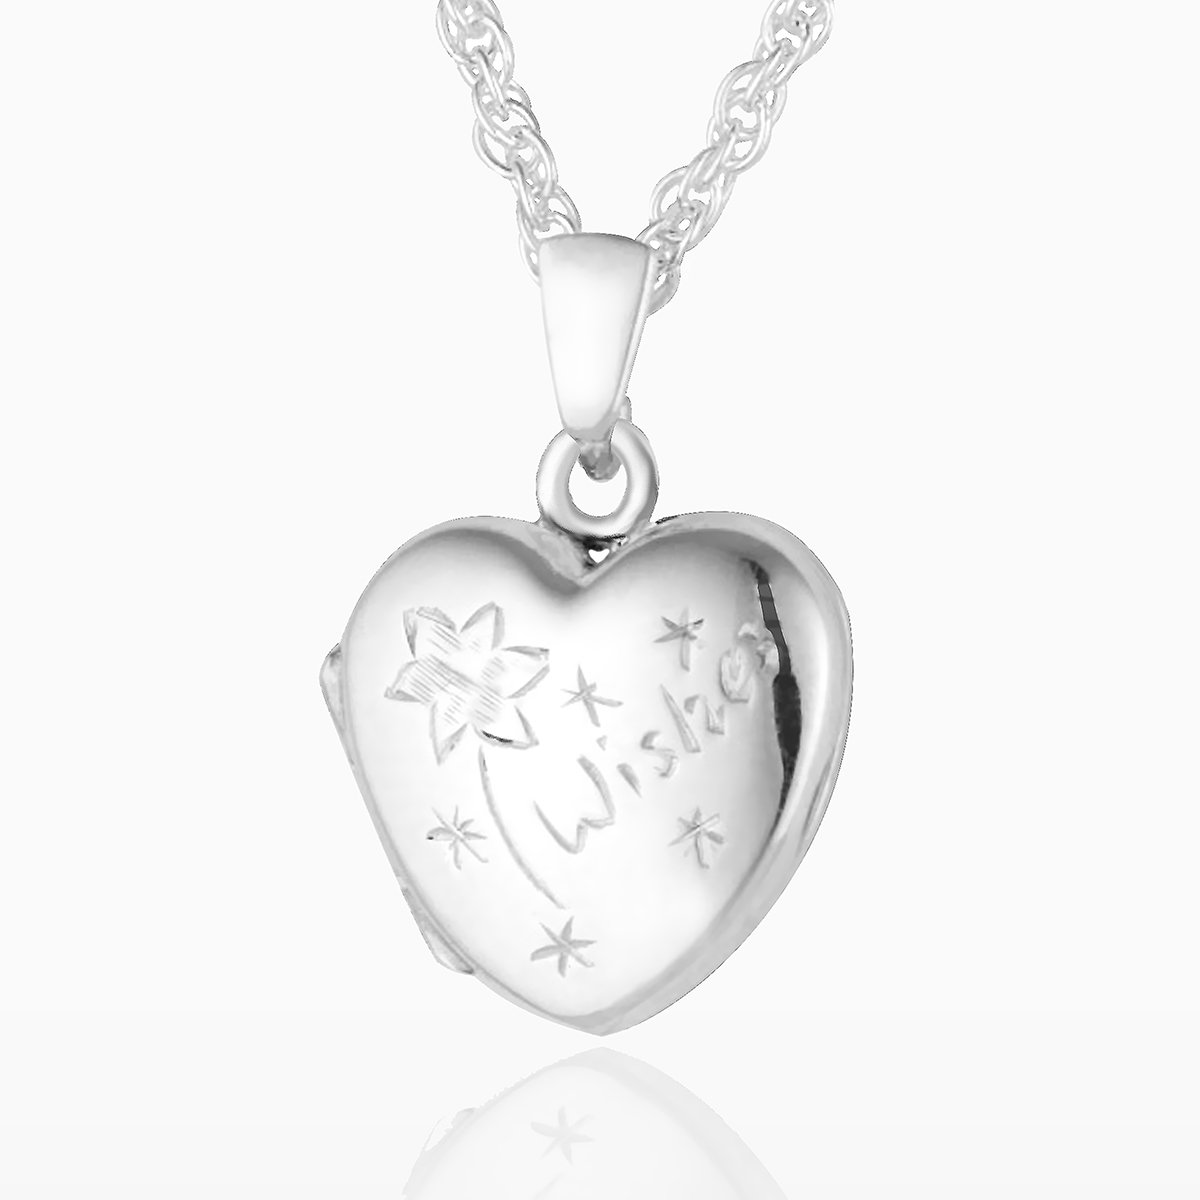 Product title: Silver Child's Wishes Locket, product type: Locket